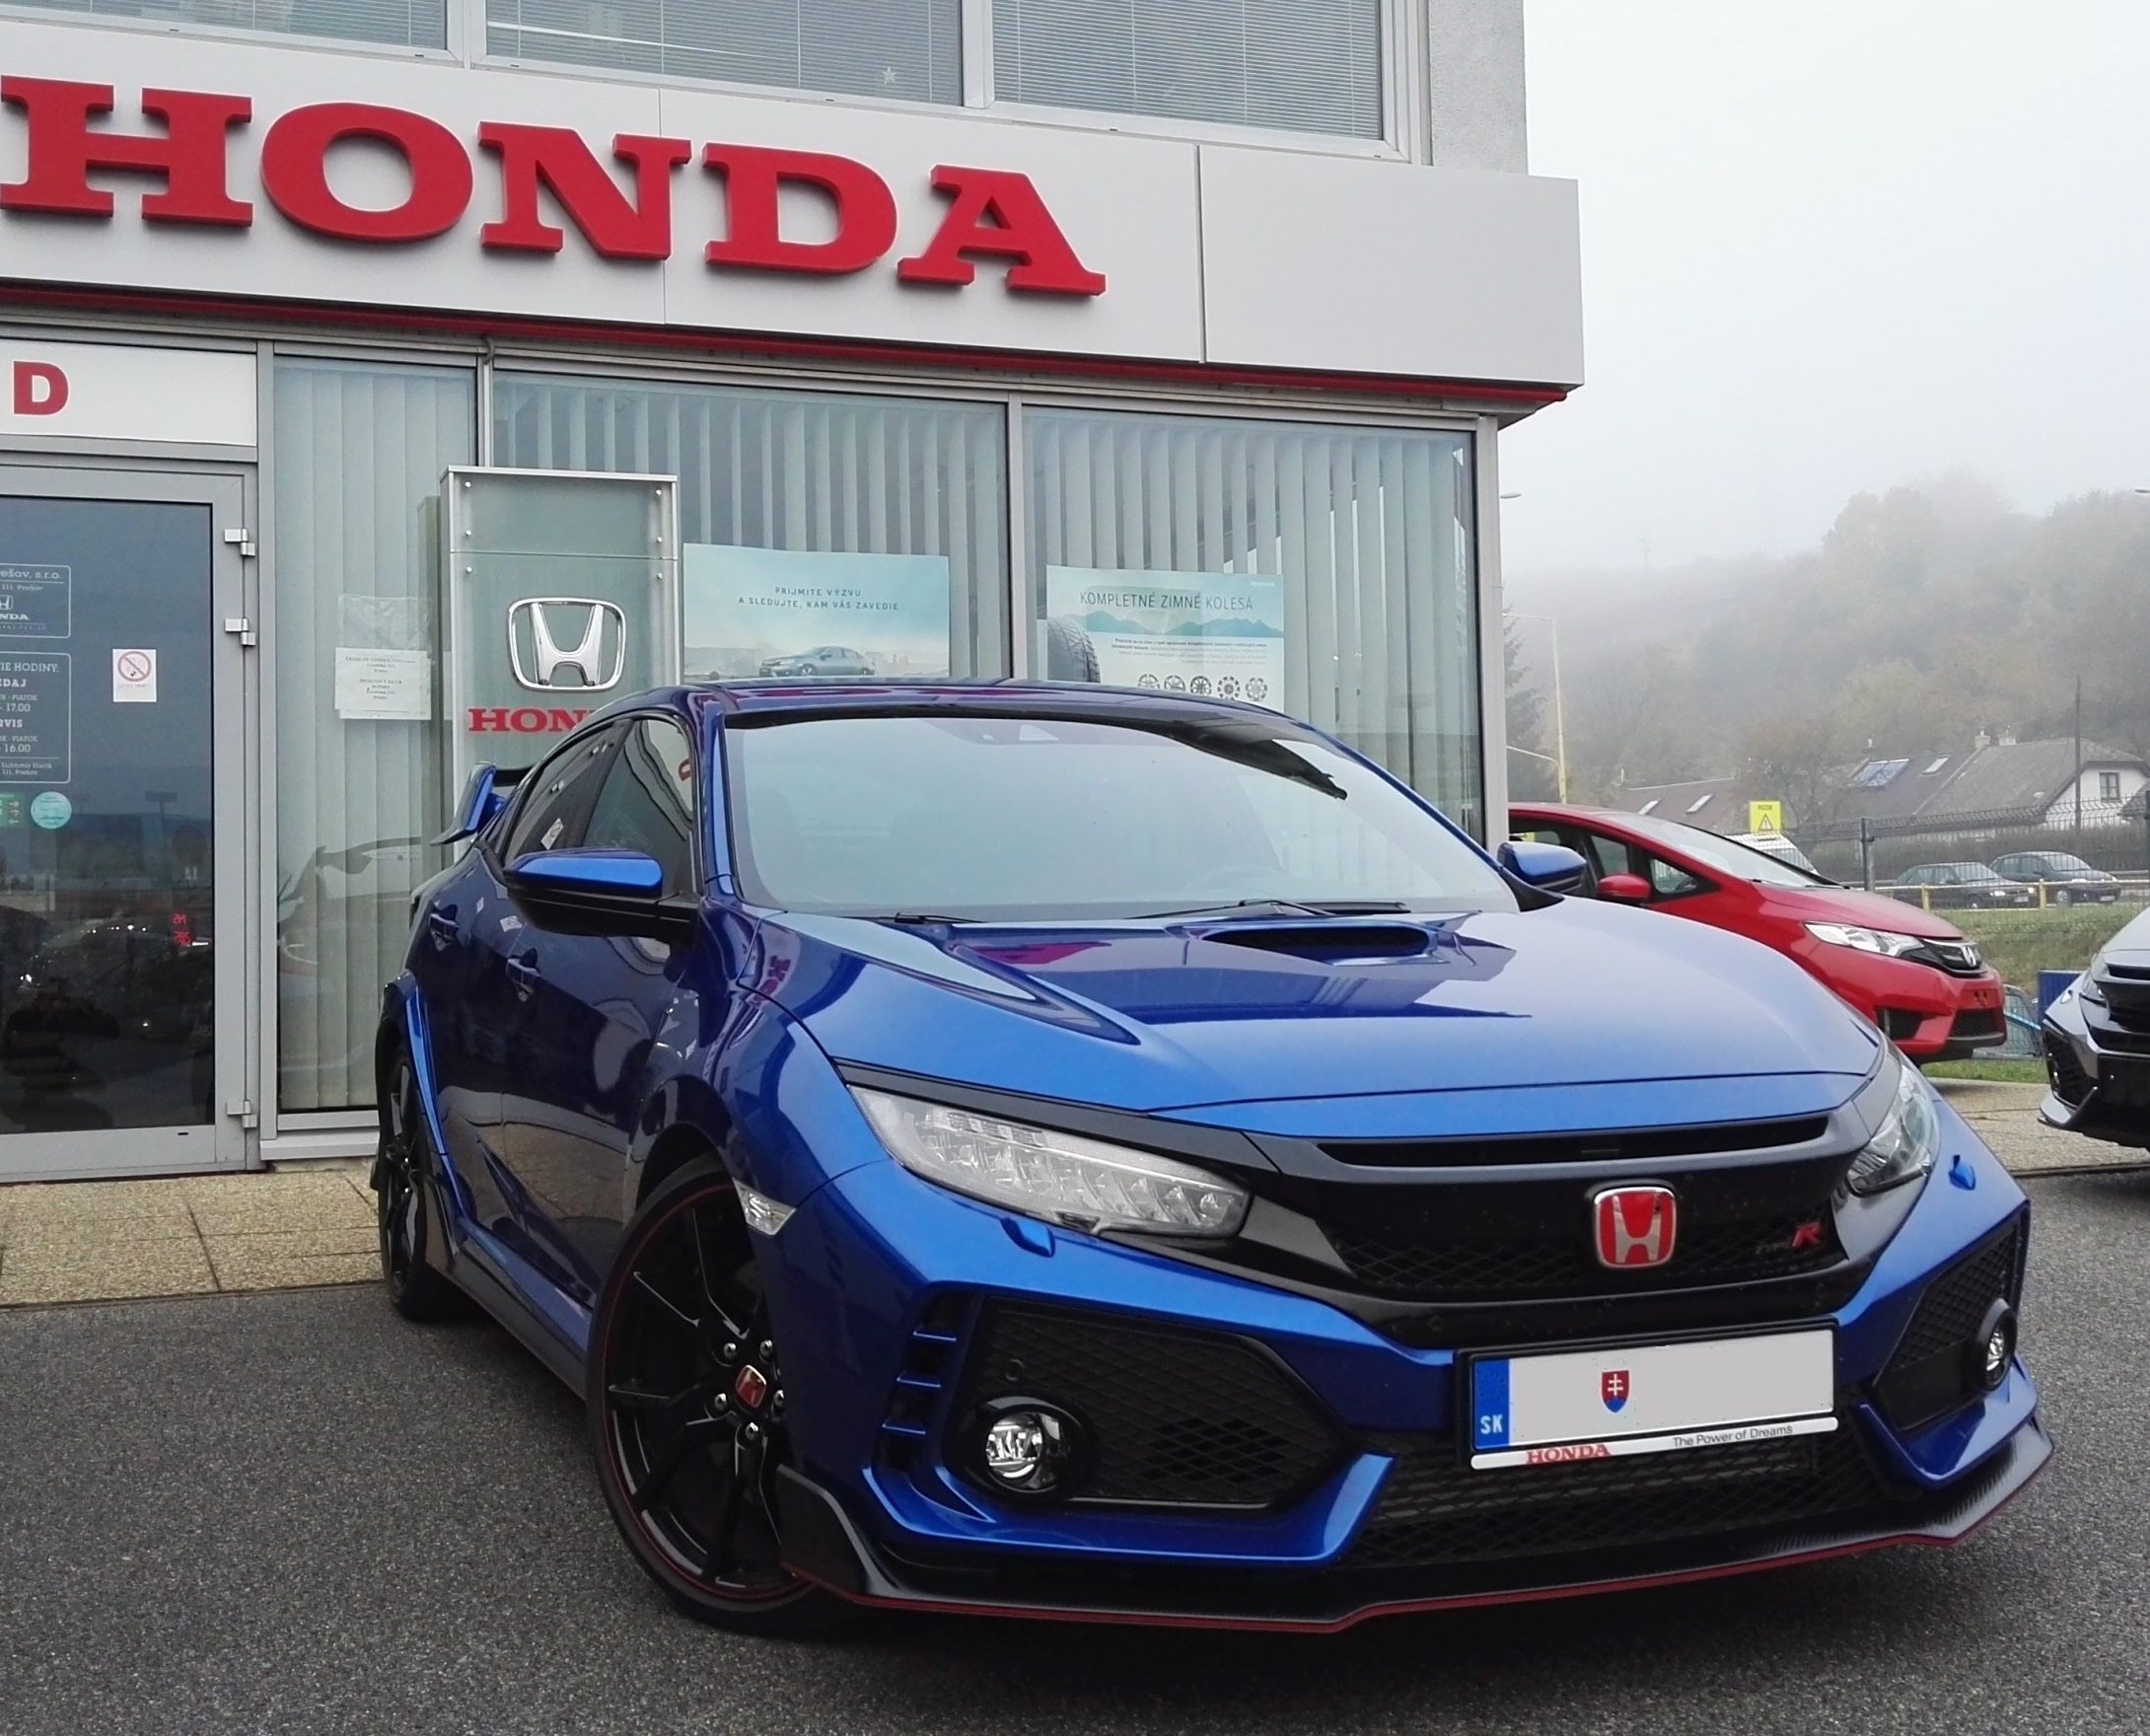 CIVIC TYPE-R GT 2,0 VTEC Turbo 2017 6MT